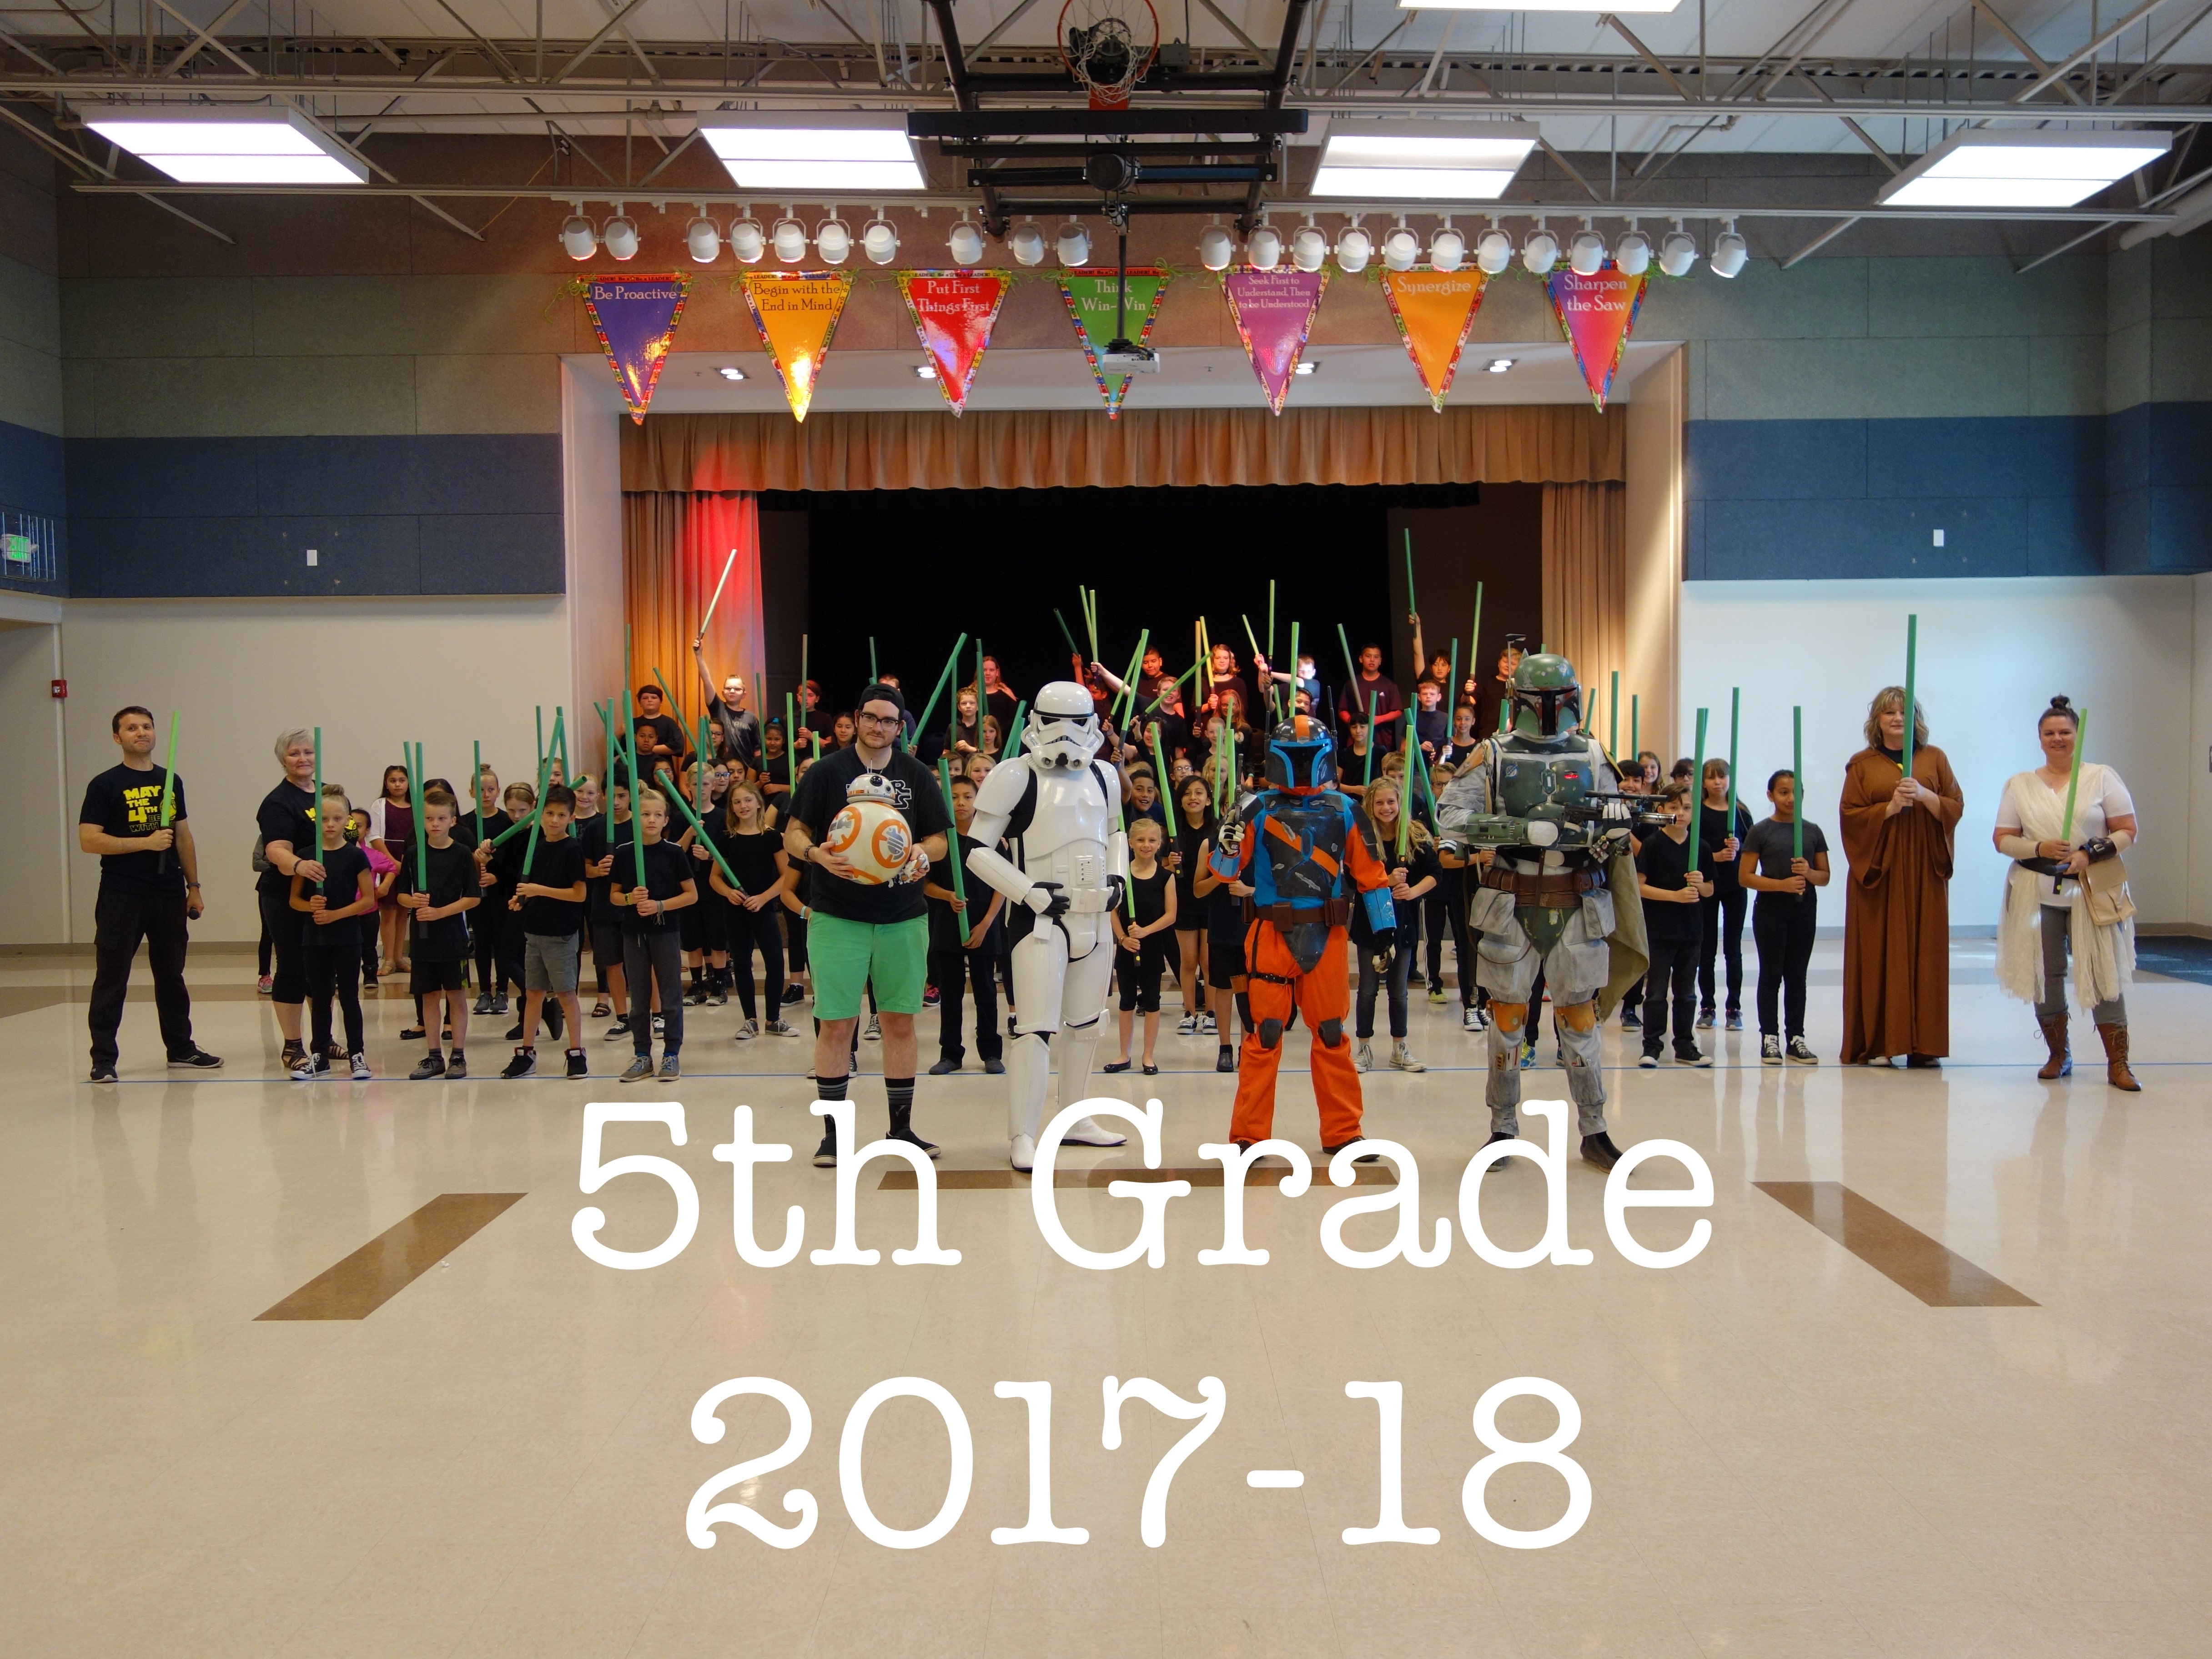 2017-18 5th grade students